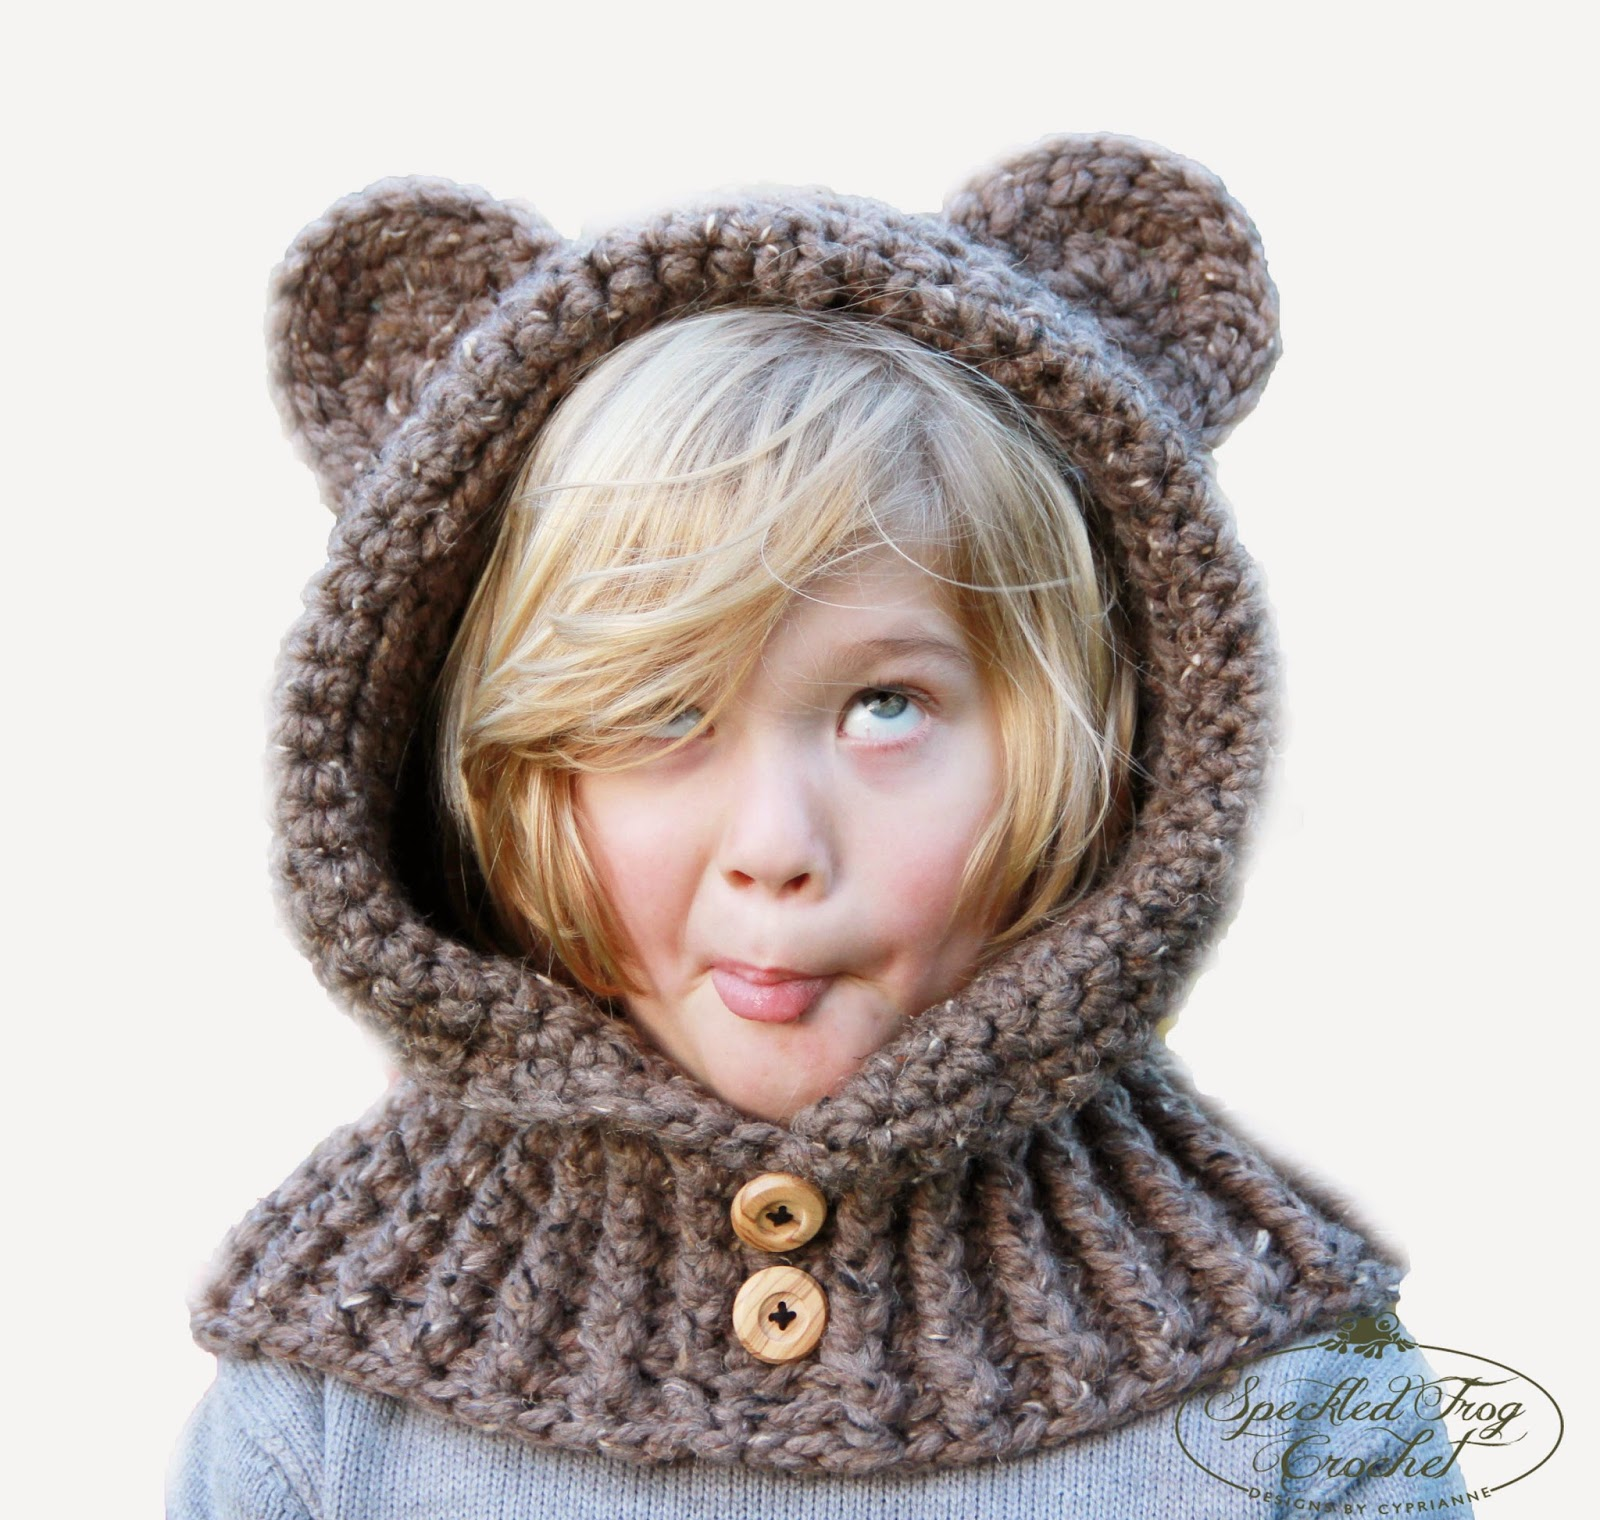 Knit Cowl Hood Pattern Free : Pretty Darn Adorable Crochet: CROCHET HOODED BEAR COWL PATTERN